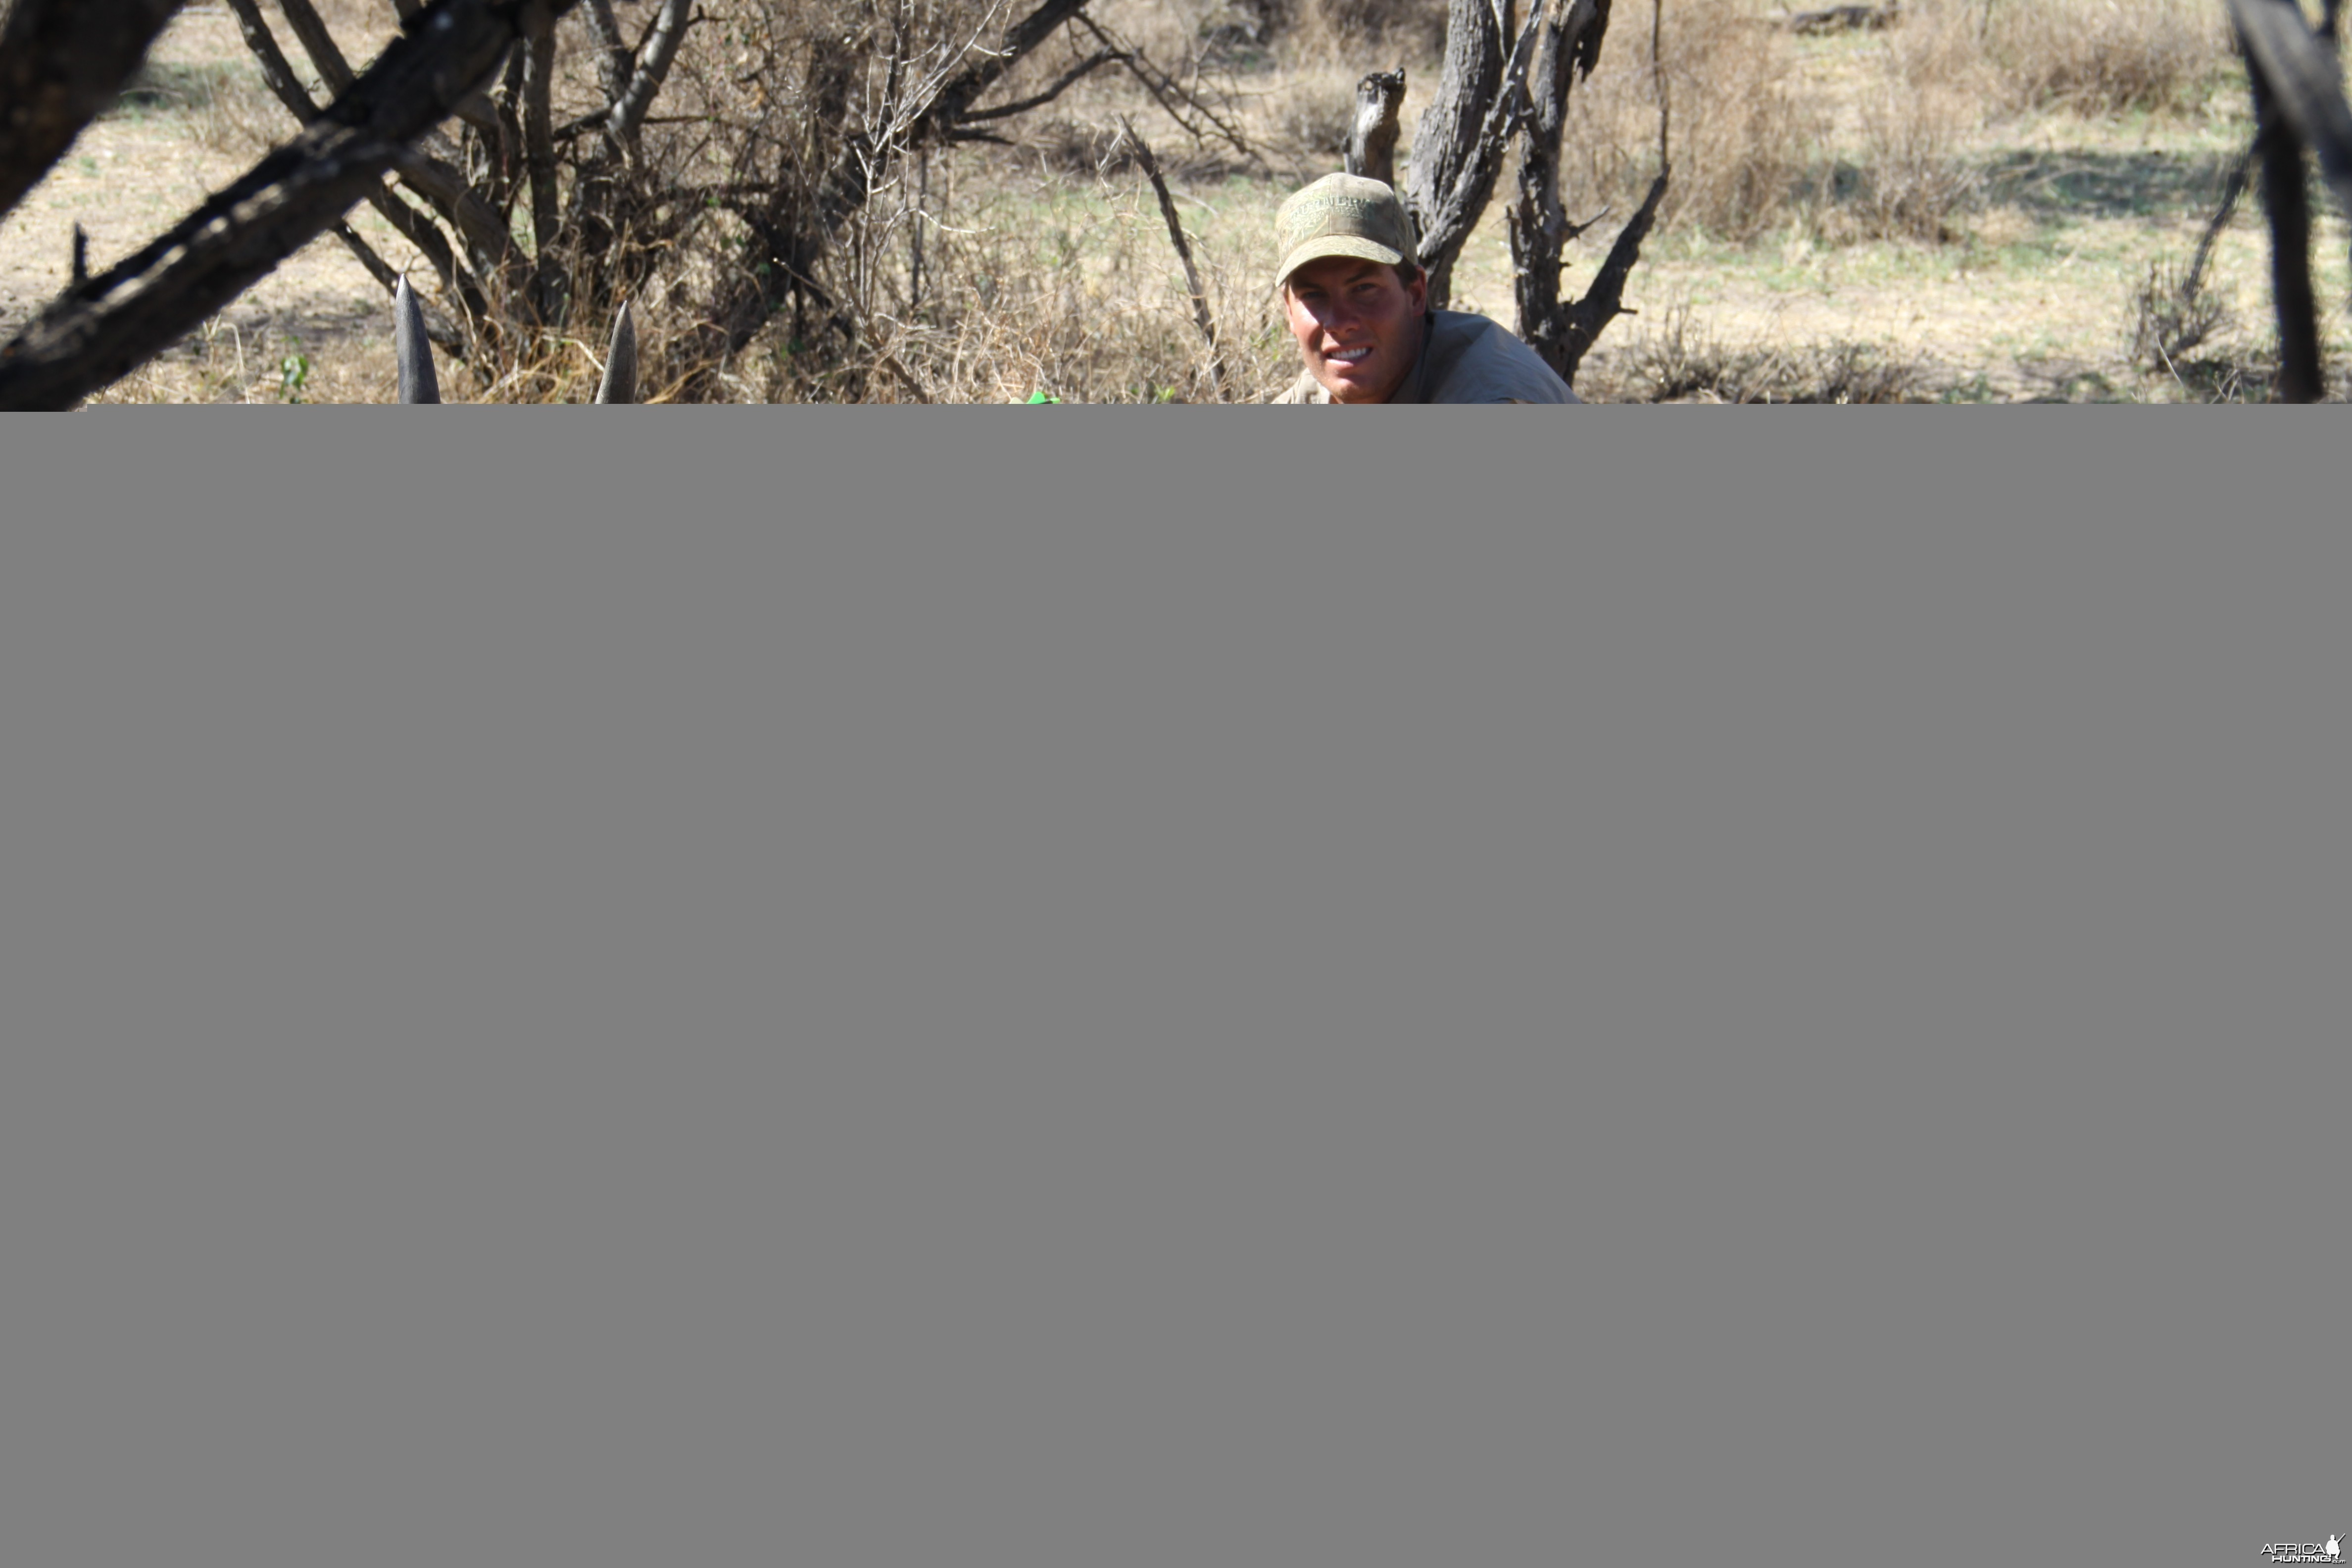 Cape Eland hunted with Ozondjahe Hunting Safaris in Namibia